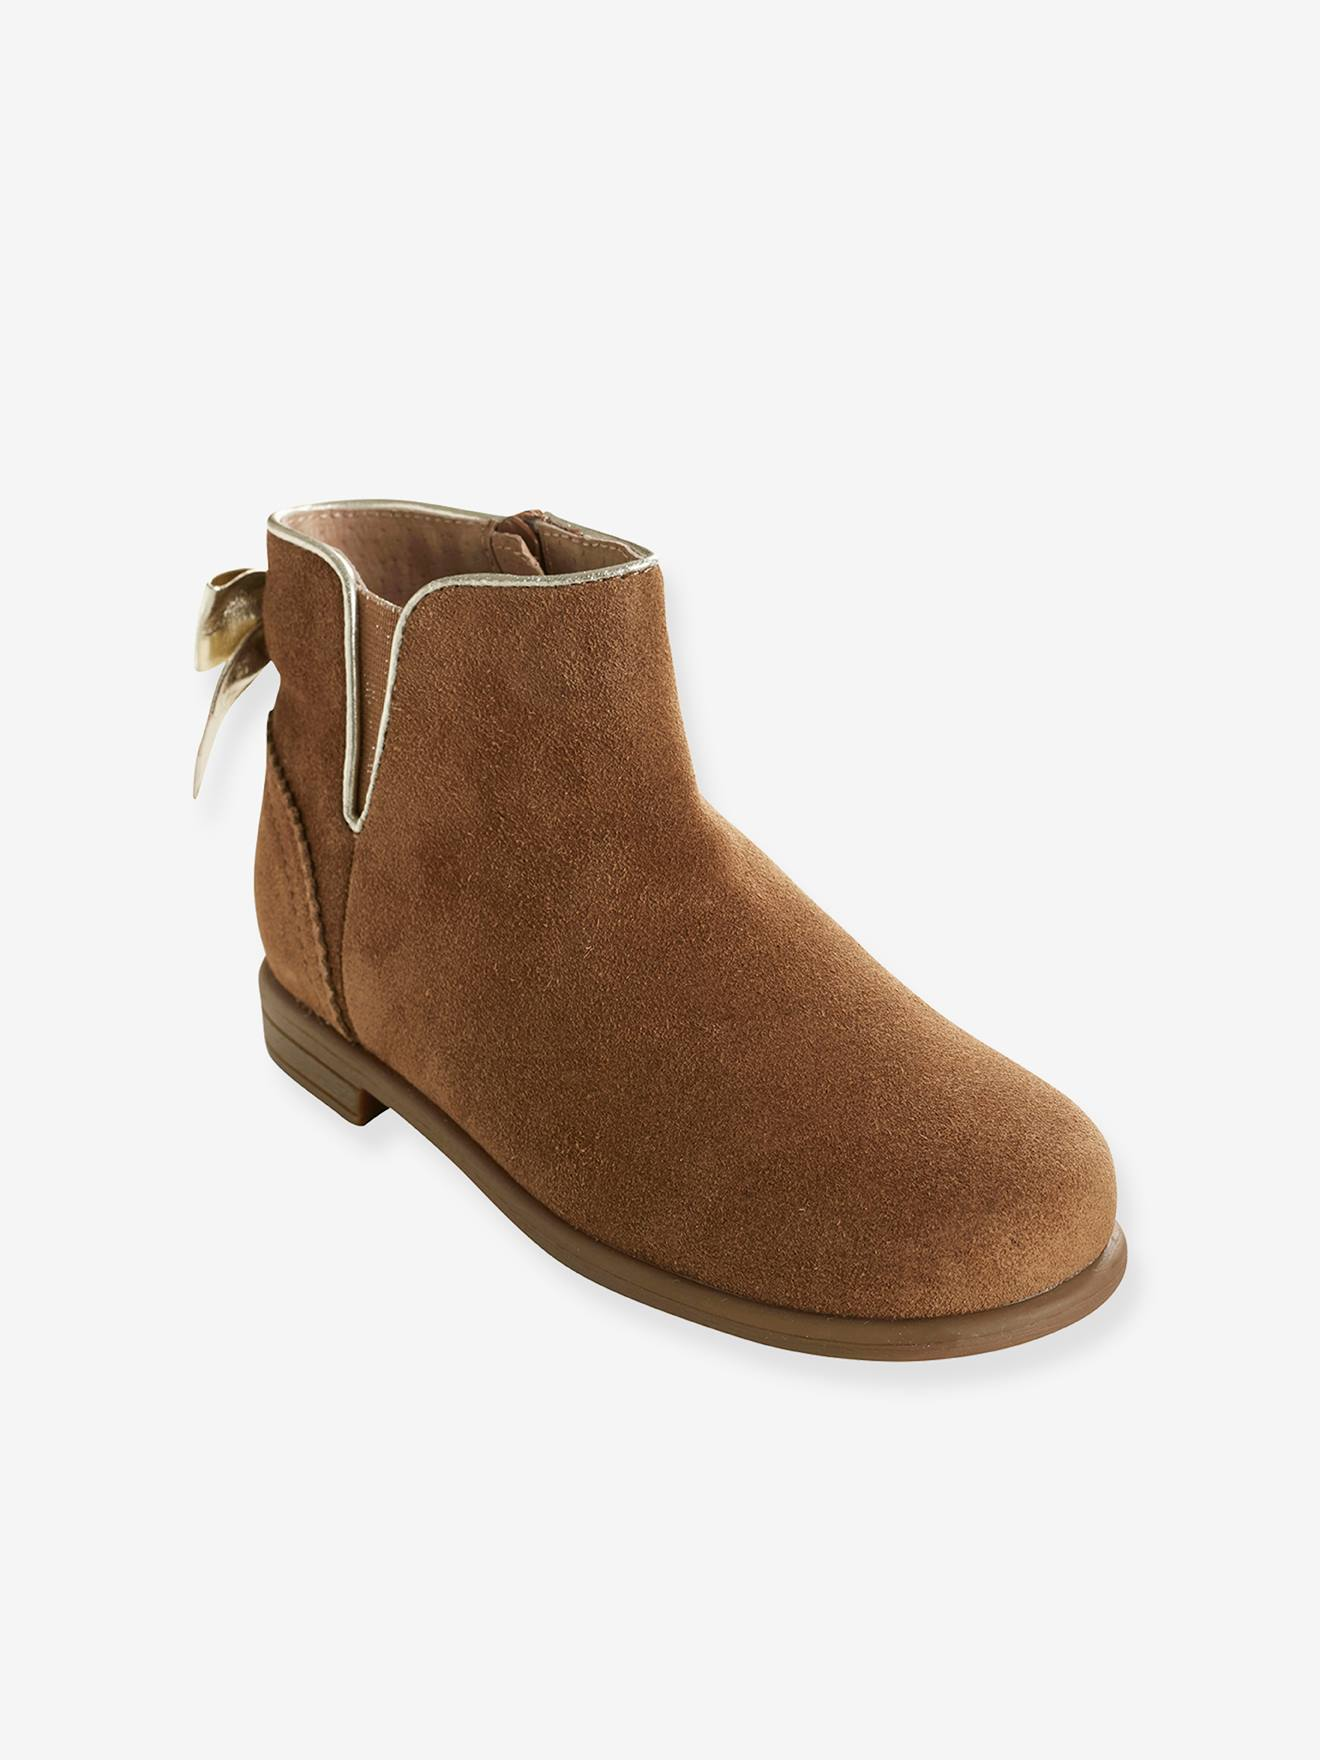 Boots Cuir Boots Fille CaramelChaussures Cuir Fille wPk0nO